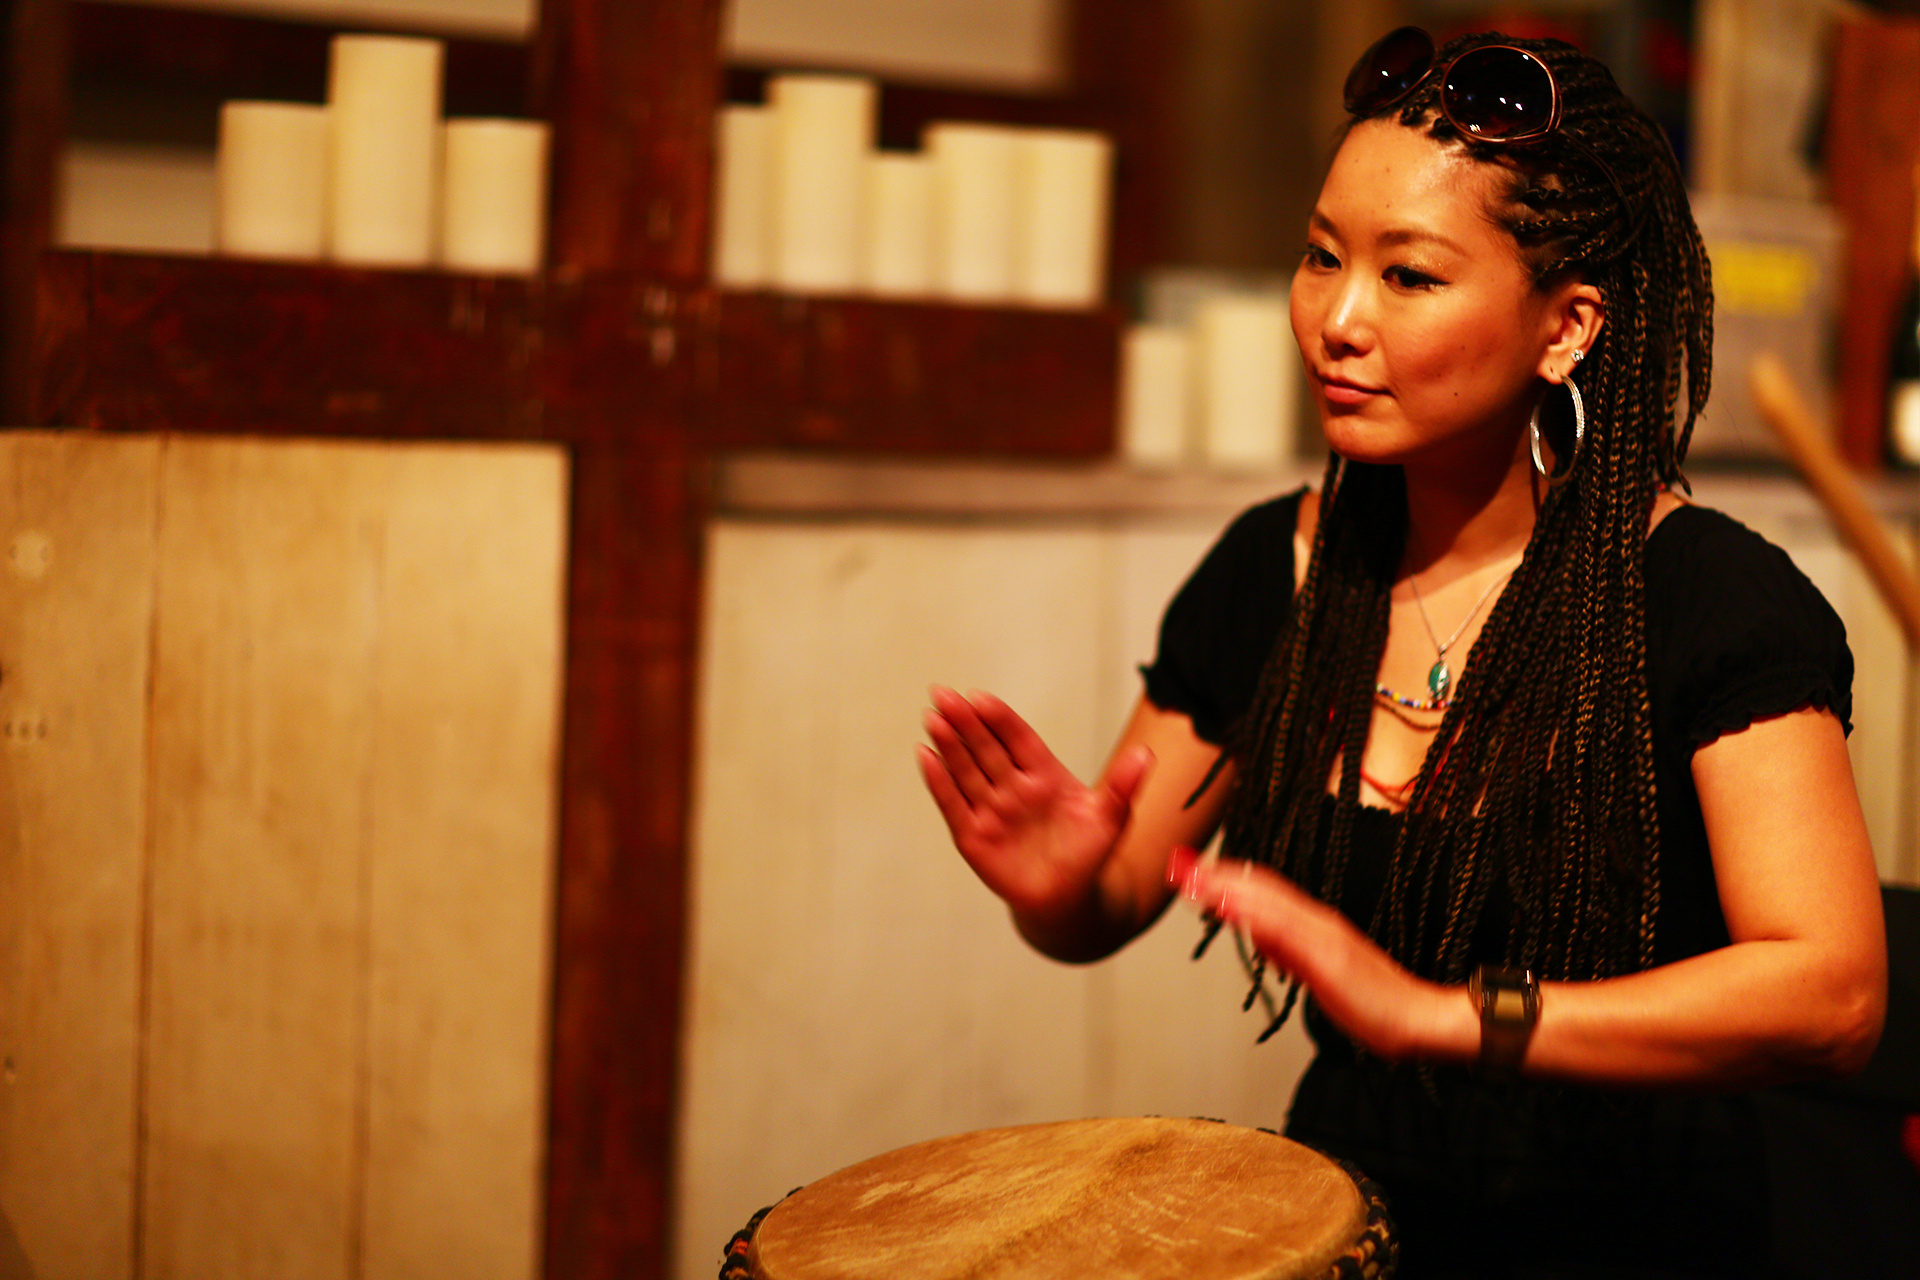 Djembe Lesson at Absinthe